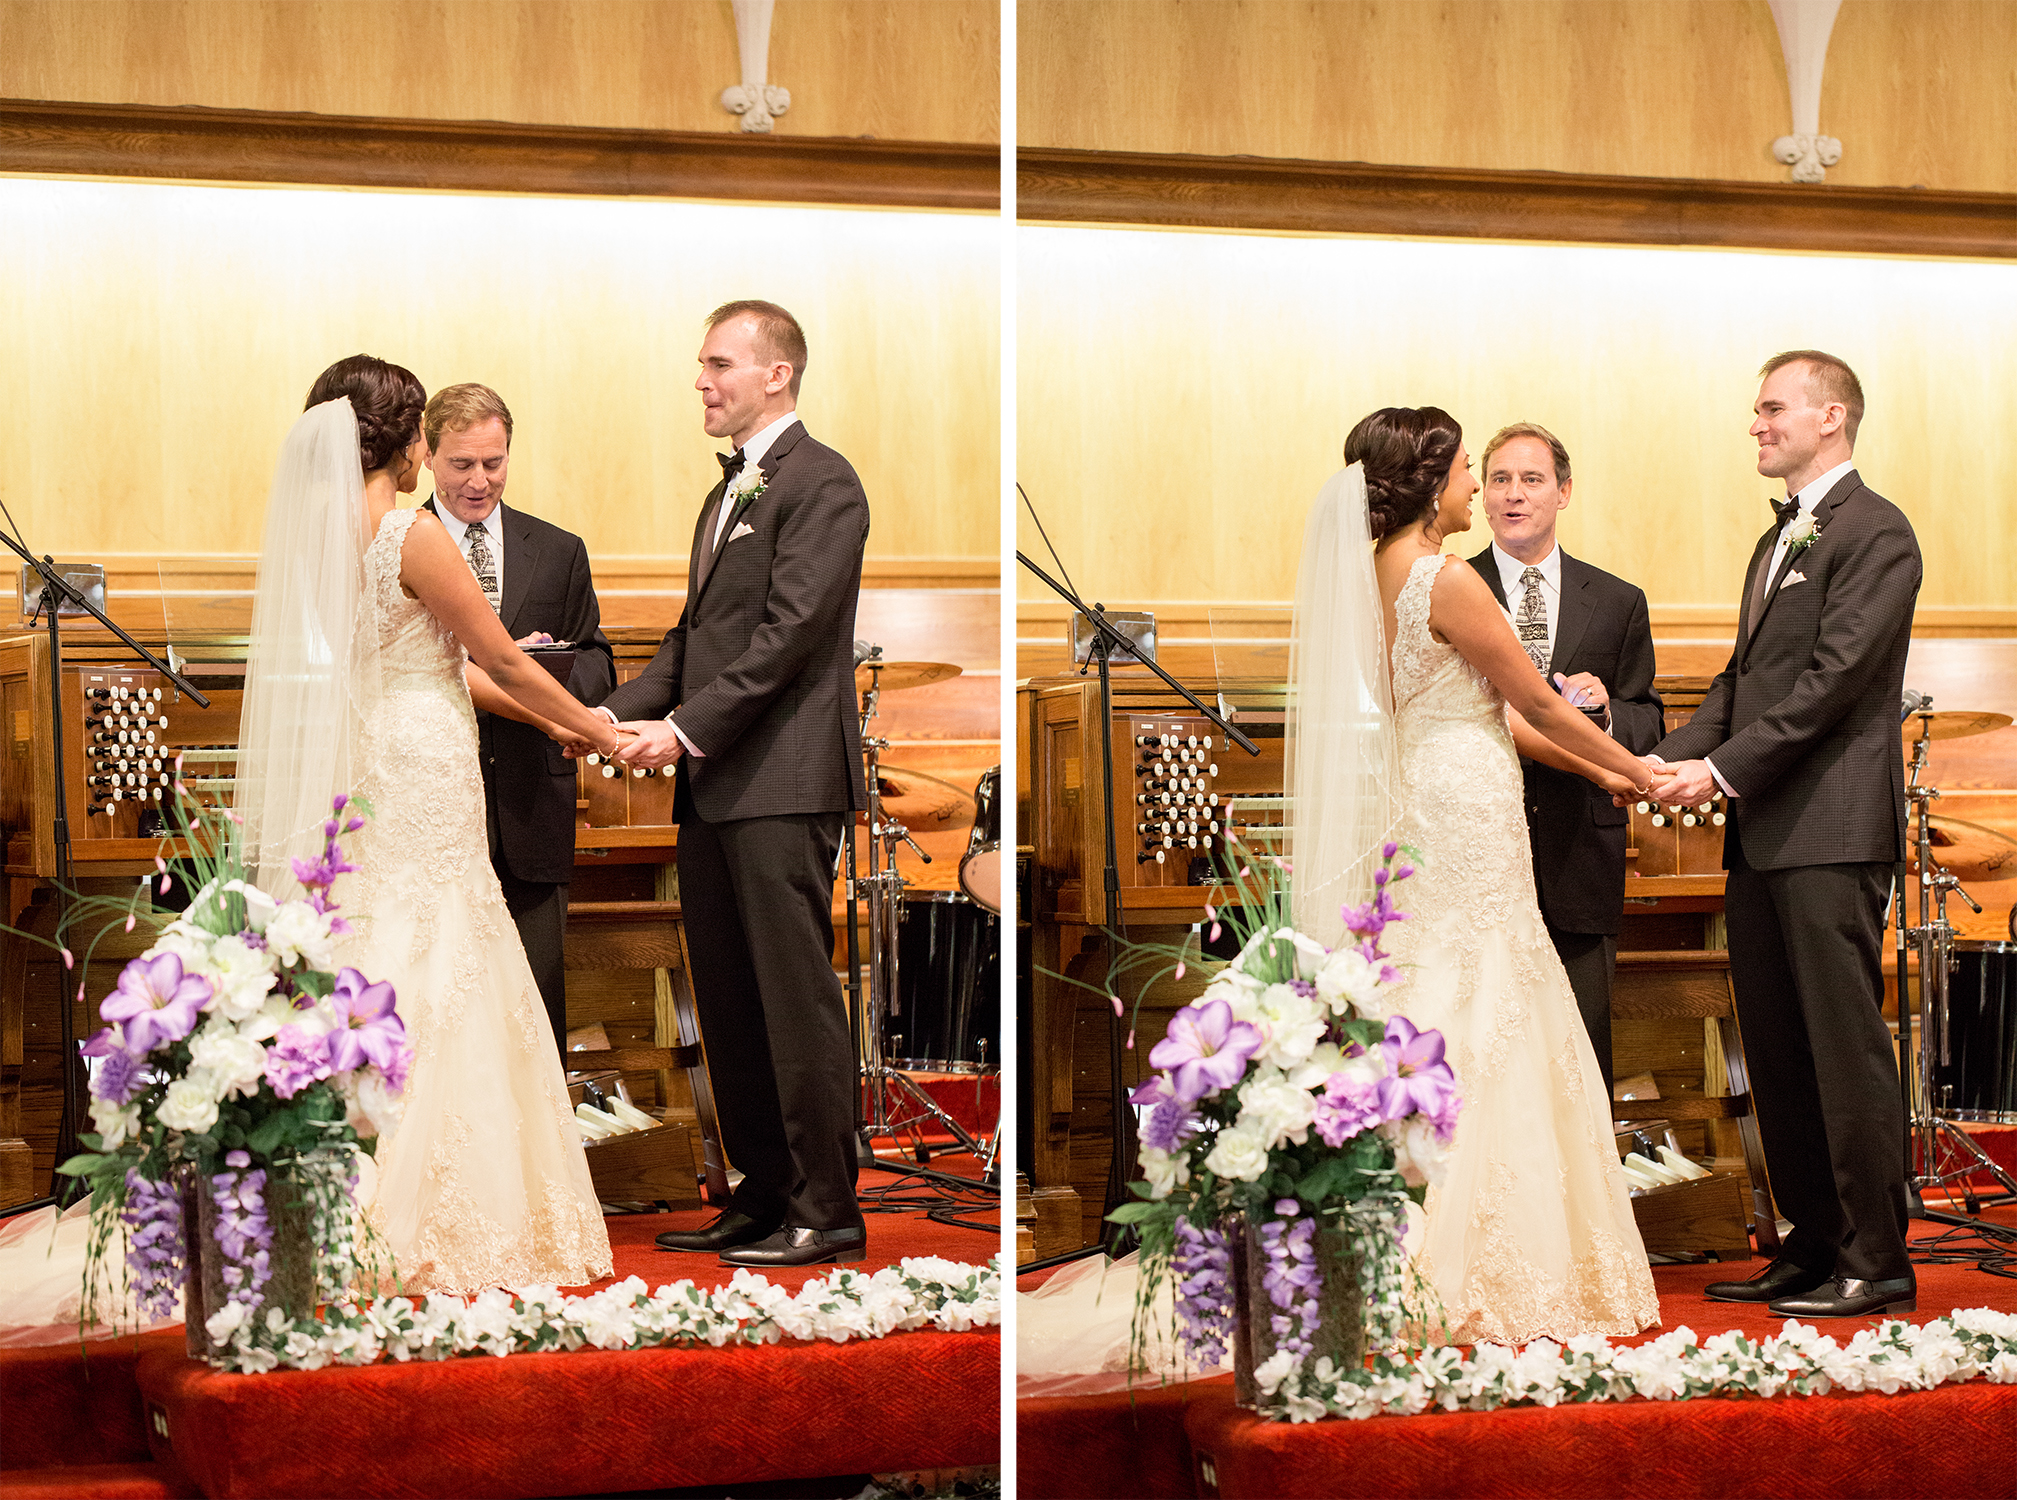 CalgaryWeddingPhotography_ParrishHousePhotos_JR03_22.jpg